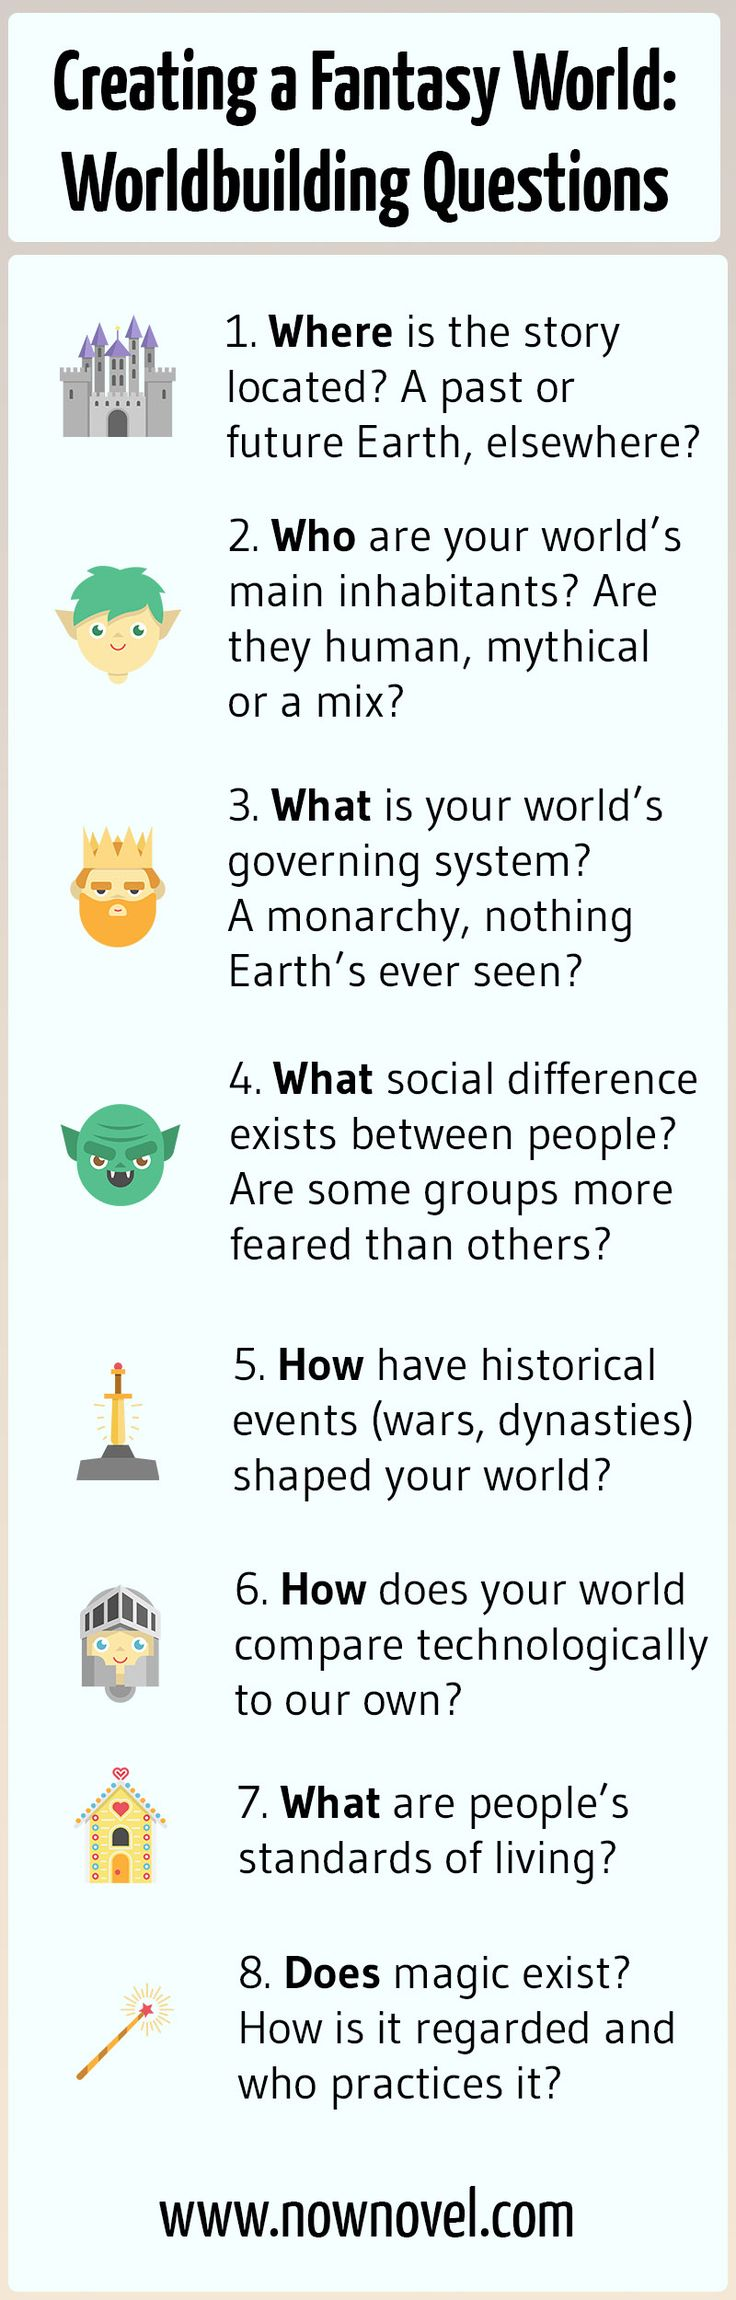 Infographic: Fantasy worldbuilding questions | Now Novel fantasy worldbuilding writing tip